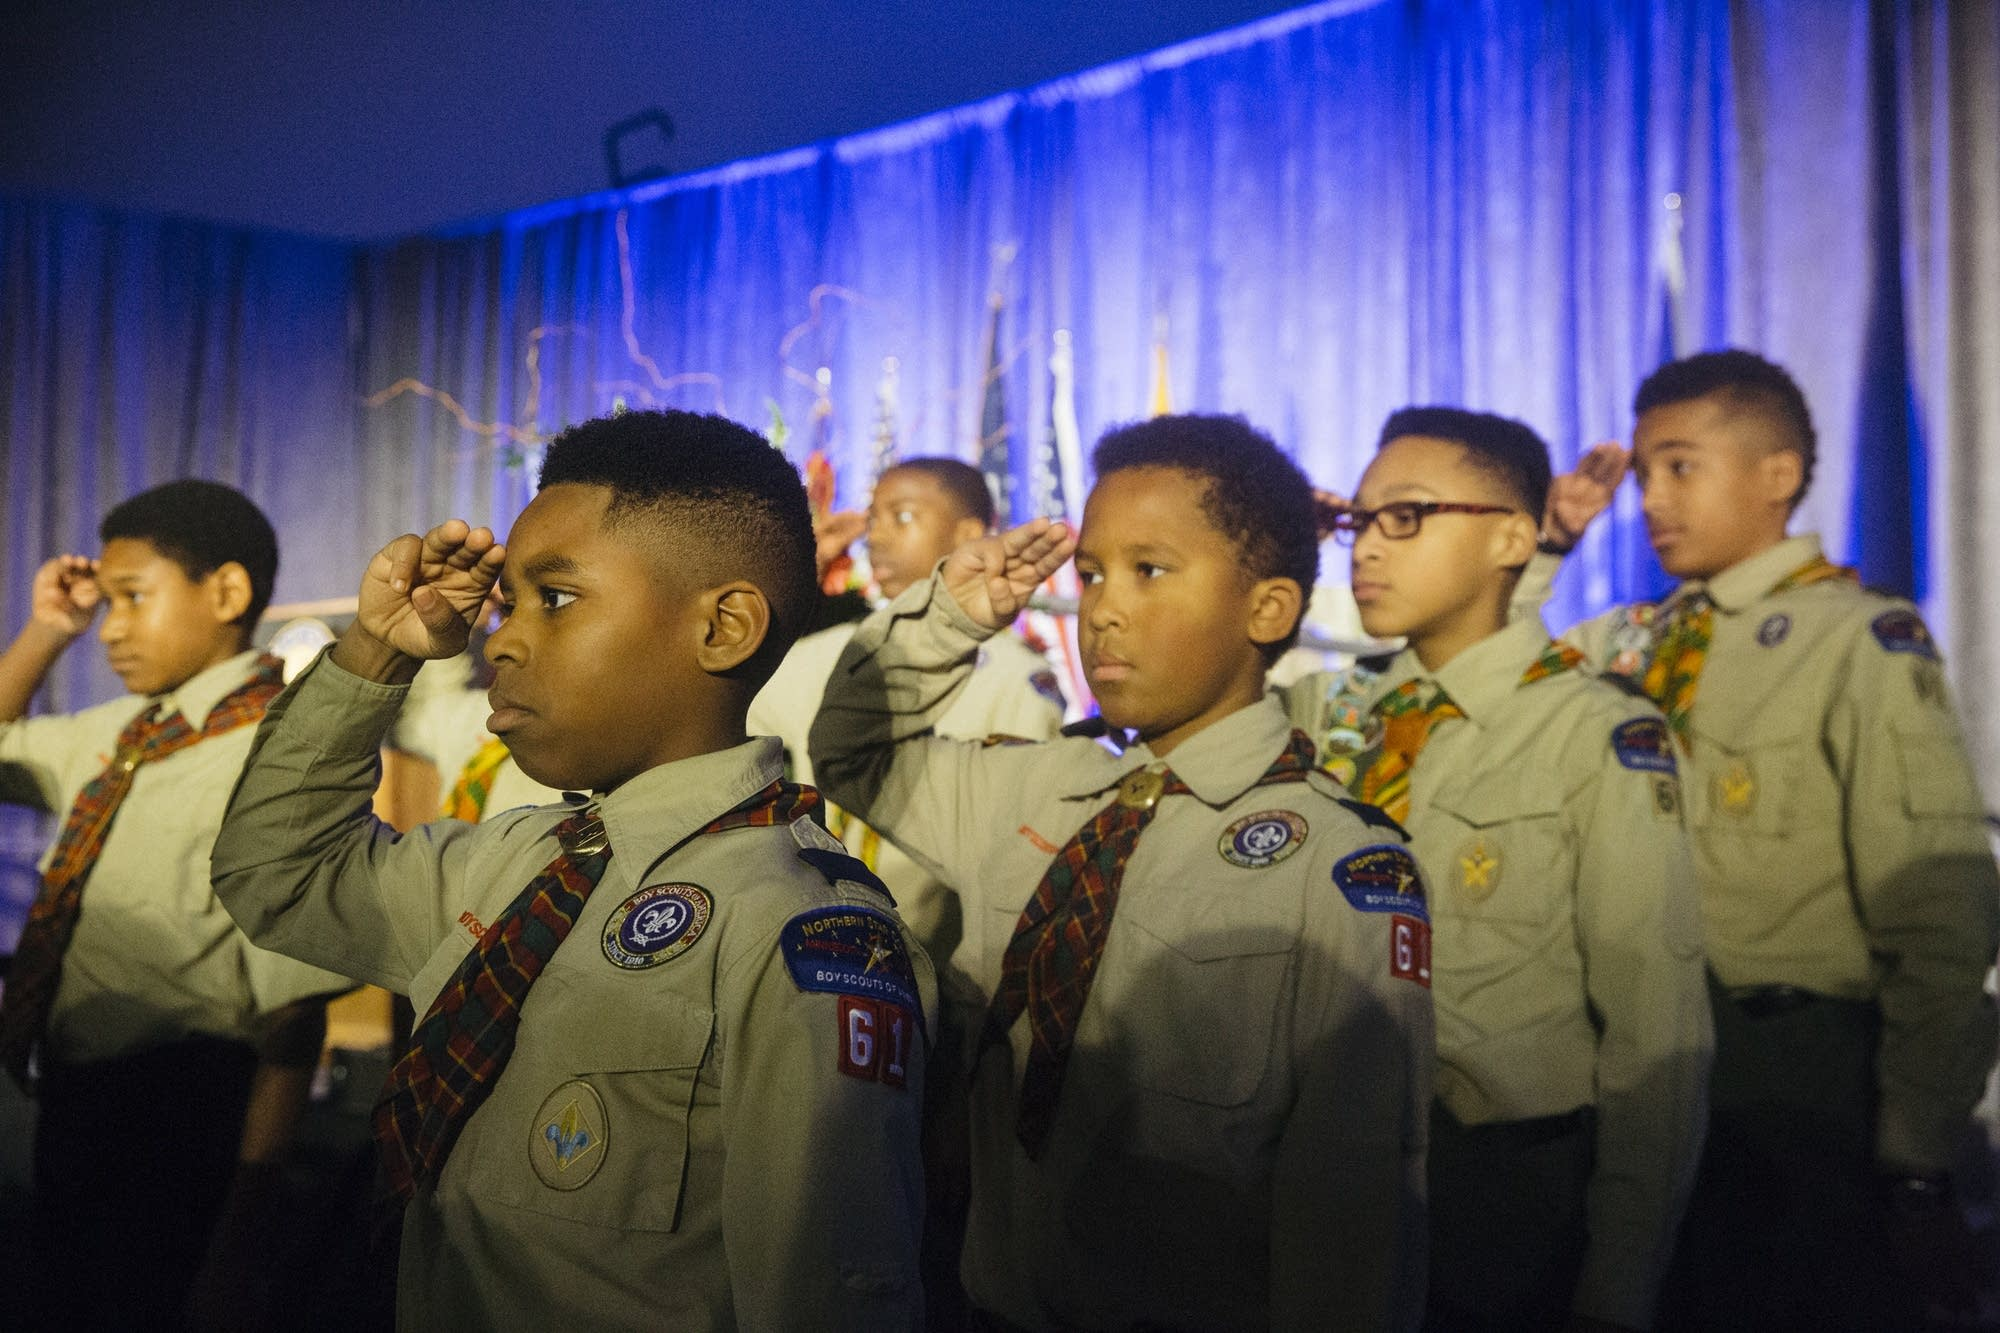 Members of Boy Scout Troop 61 salute